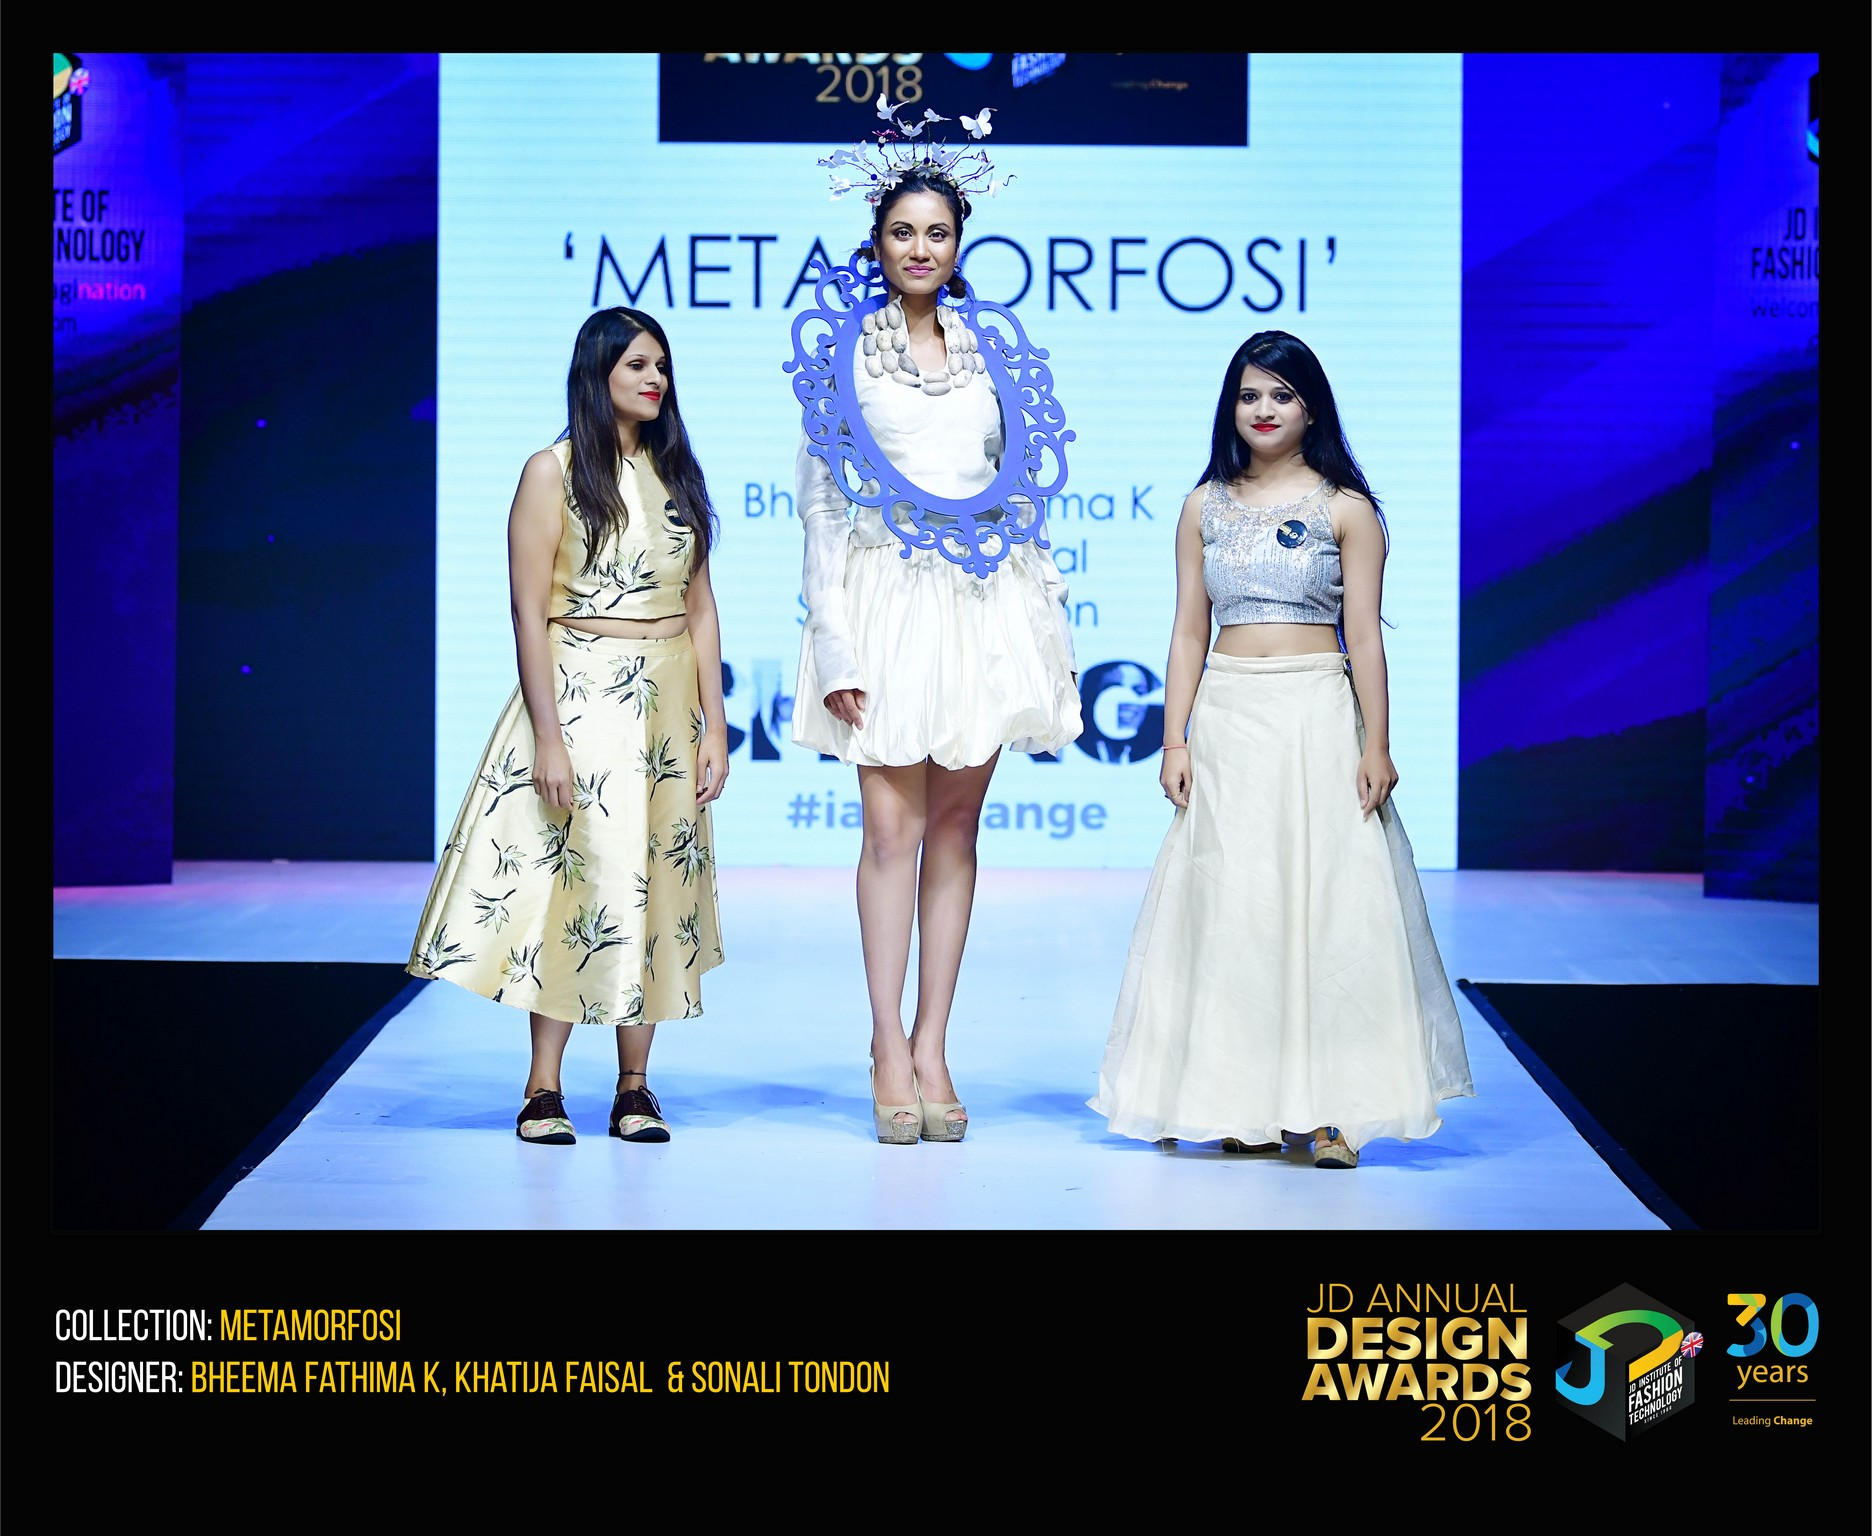 Metamorfosi – Change – JD Annual Design Awards 2018 | Designer: Beema Fatima, Khateeja Faisal and Sonali Tadon | Photography : Jerin Nath (@jerin_nath) metamorfosi - METAMORFOSI 8 - Metamorfosi – Change – JD Annual Design Awards 2018